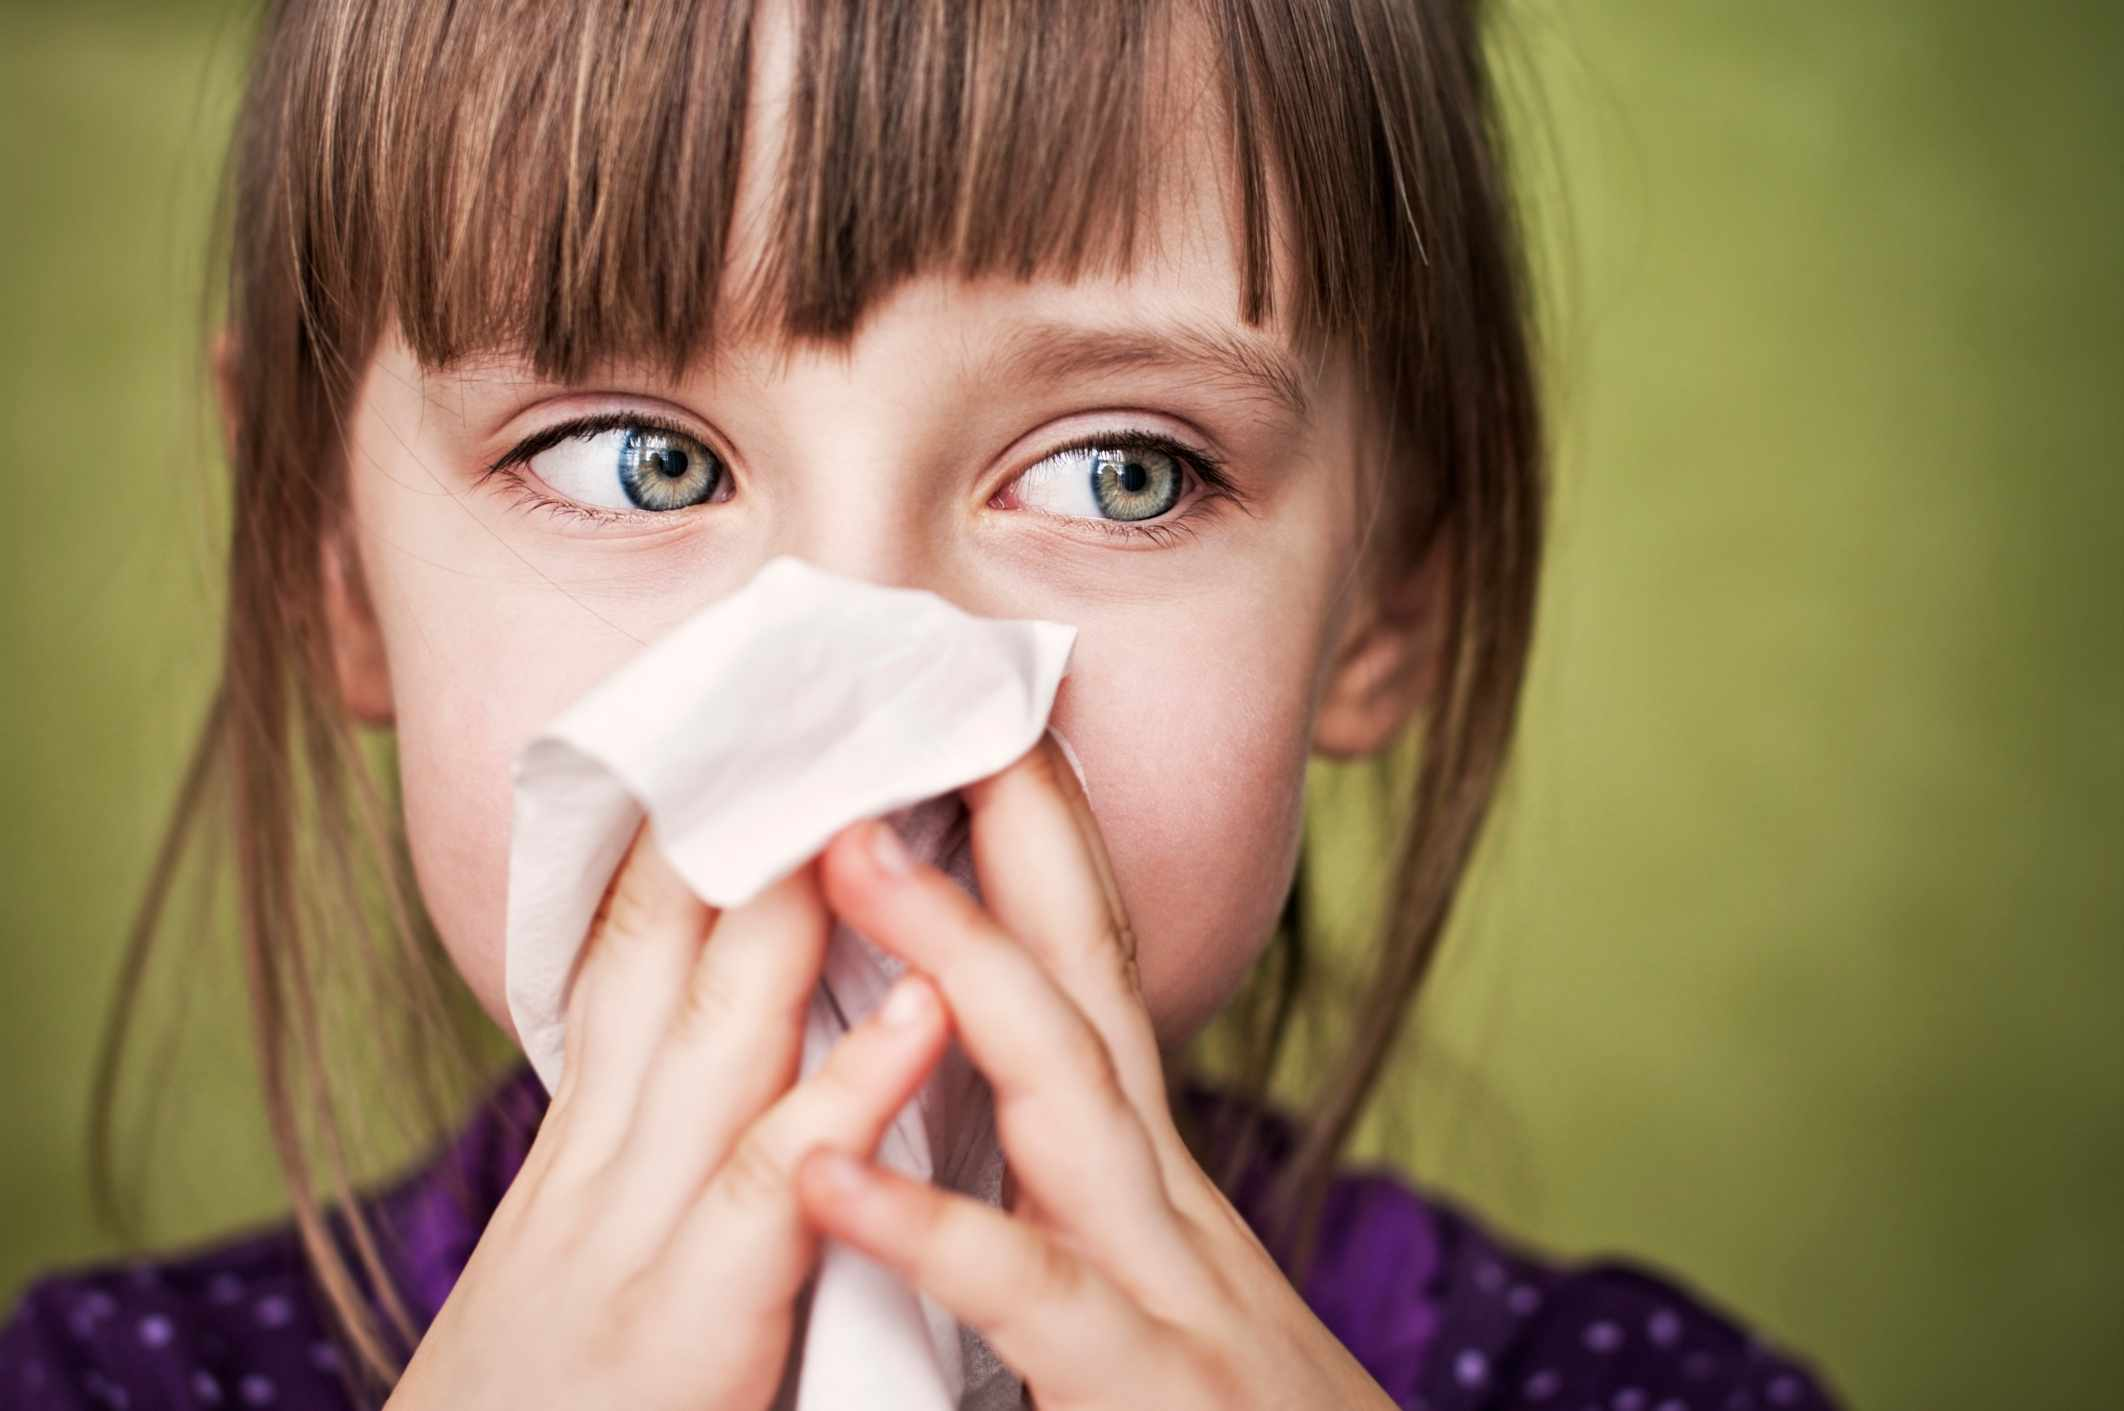 Will my eyes pop out if I don't close them when I sneeze? © Getty Images